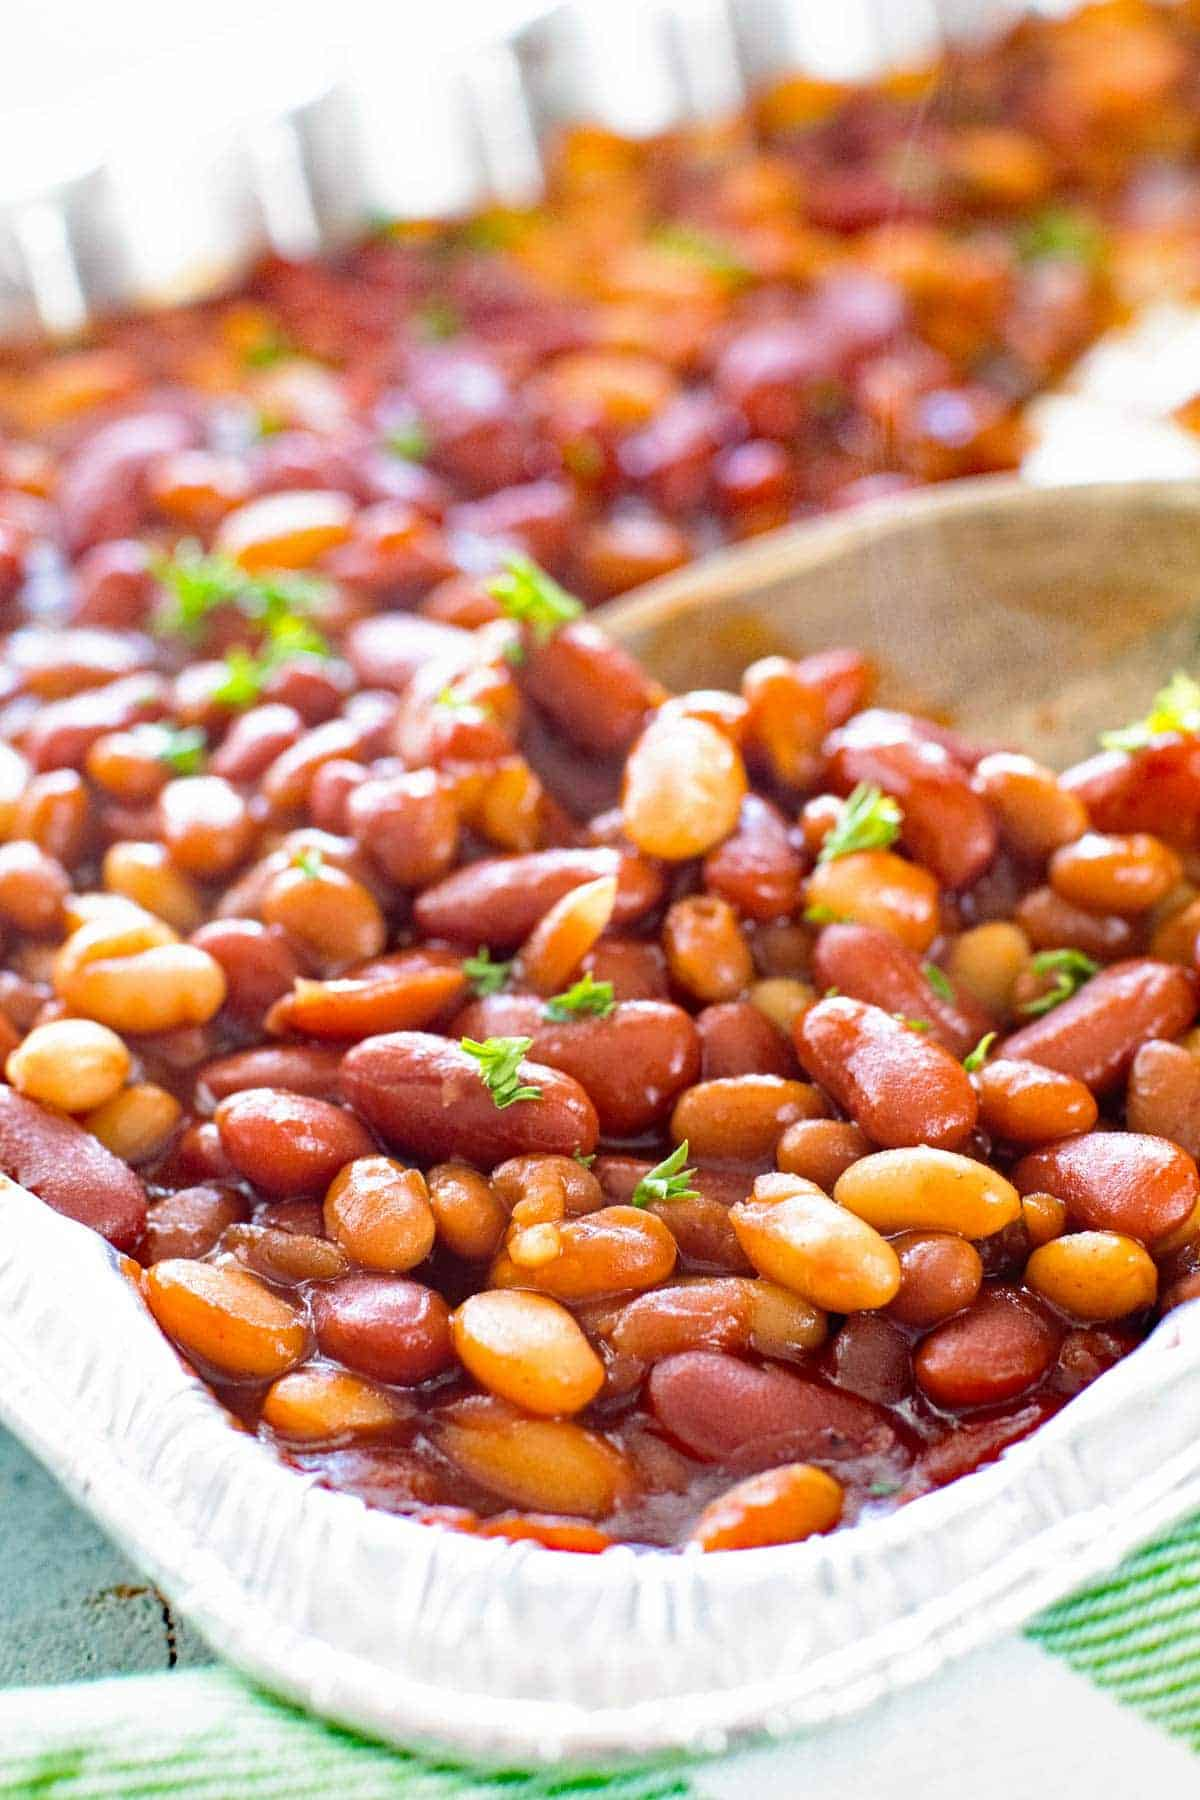 BBQ Baked Beans On the Grill